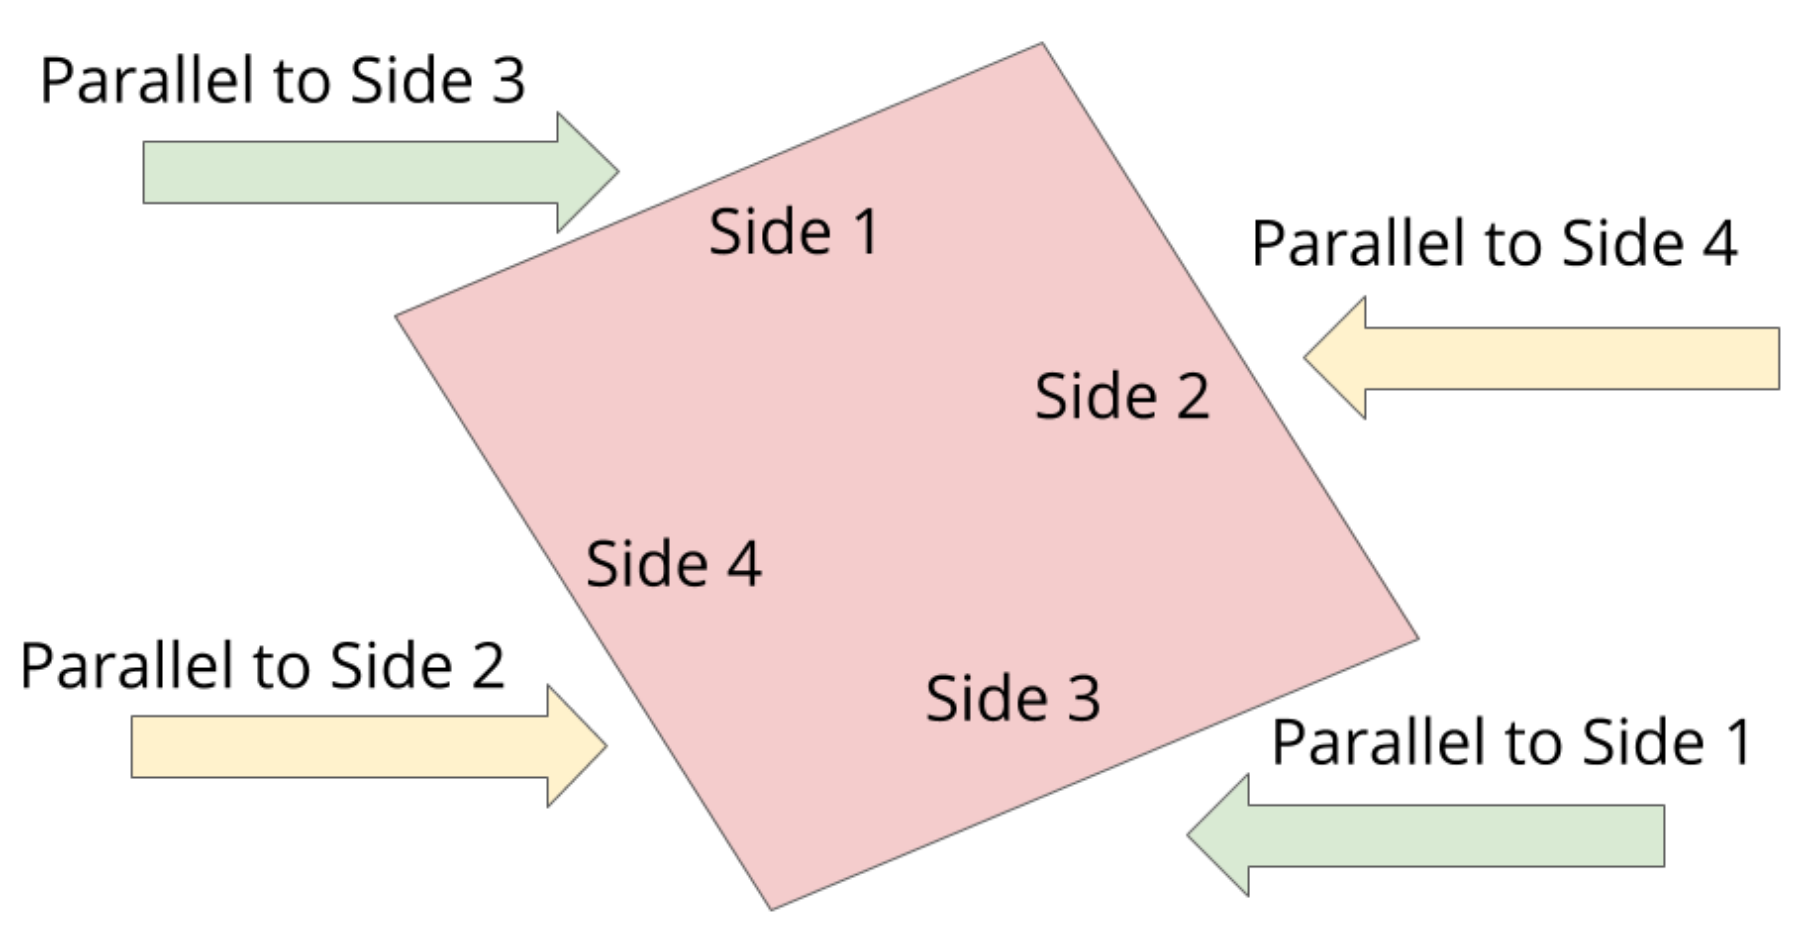 the opposite sides of the quadrilateral are parallel